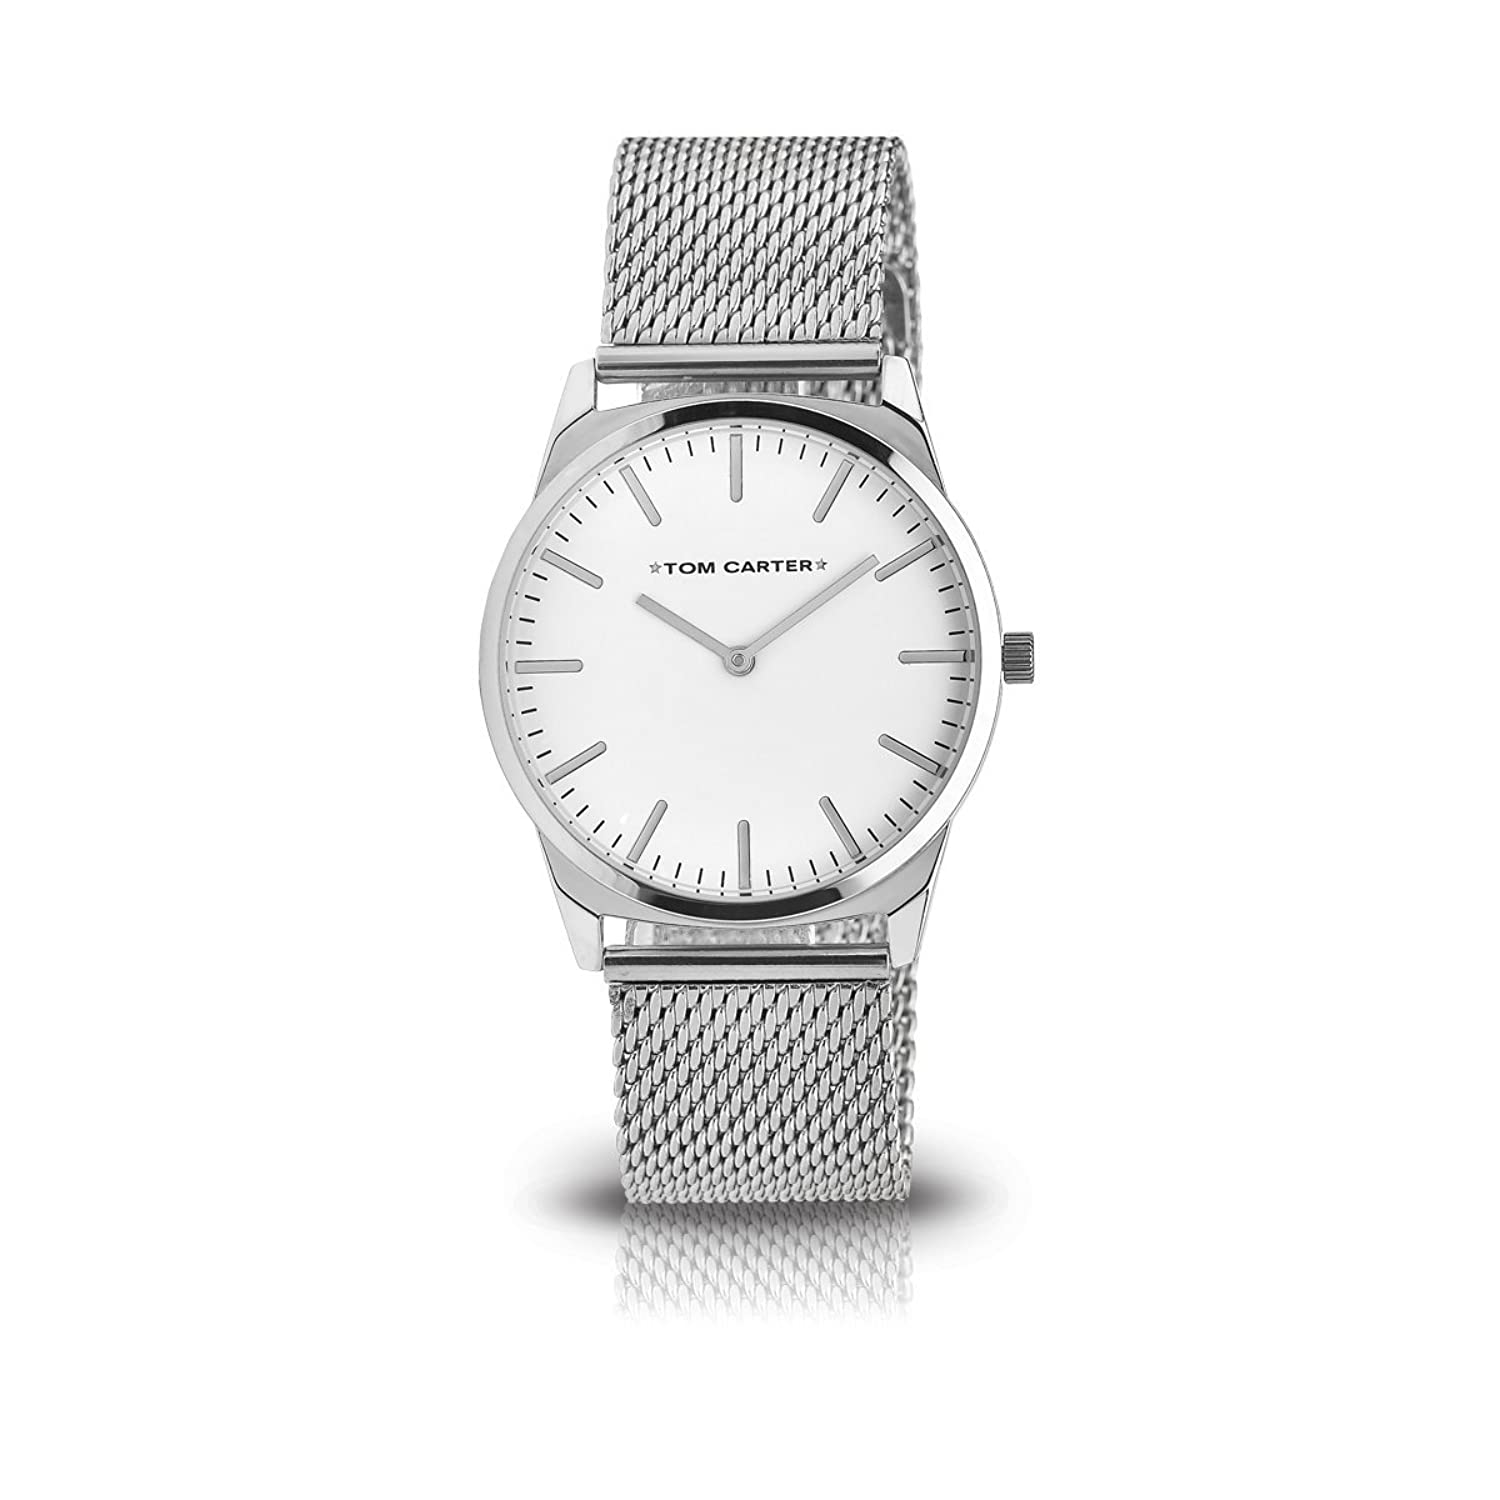 CRUISE COLLECTION 40mm CRUISE ELEGANCE STEEL - WHITE